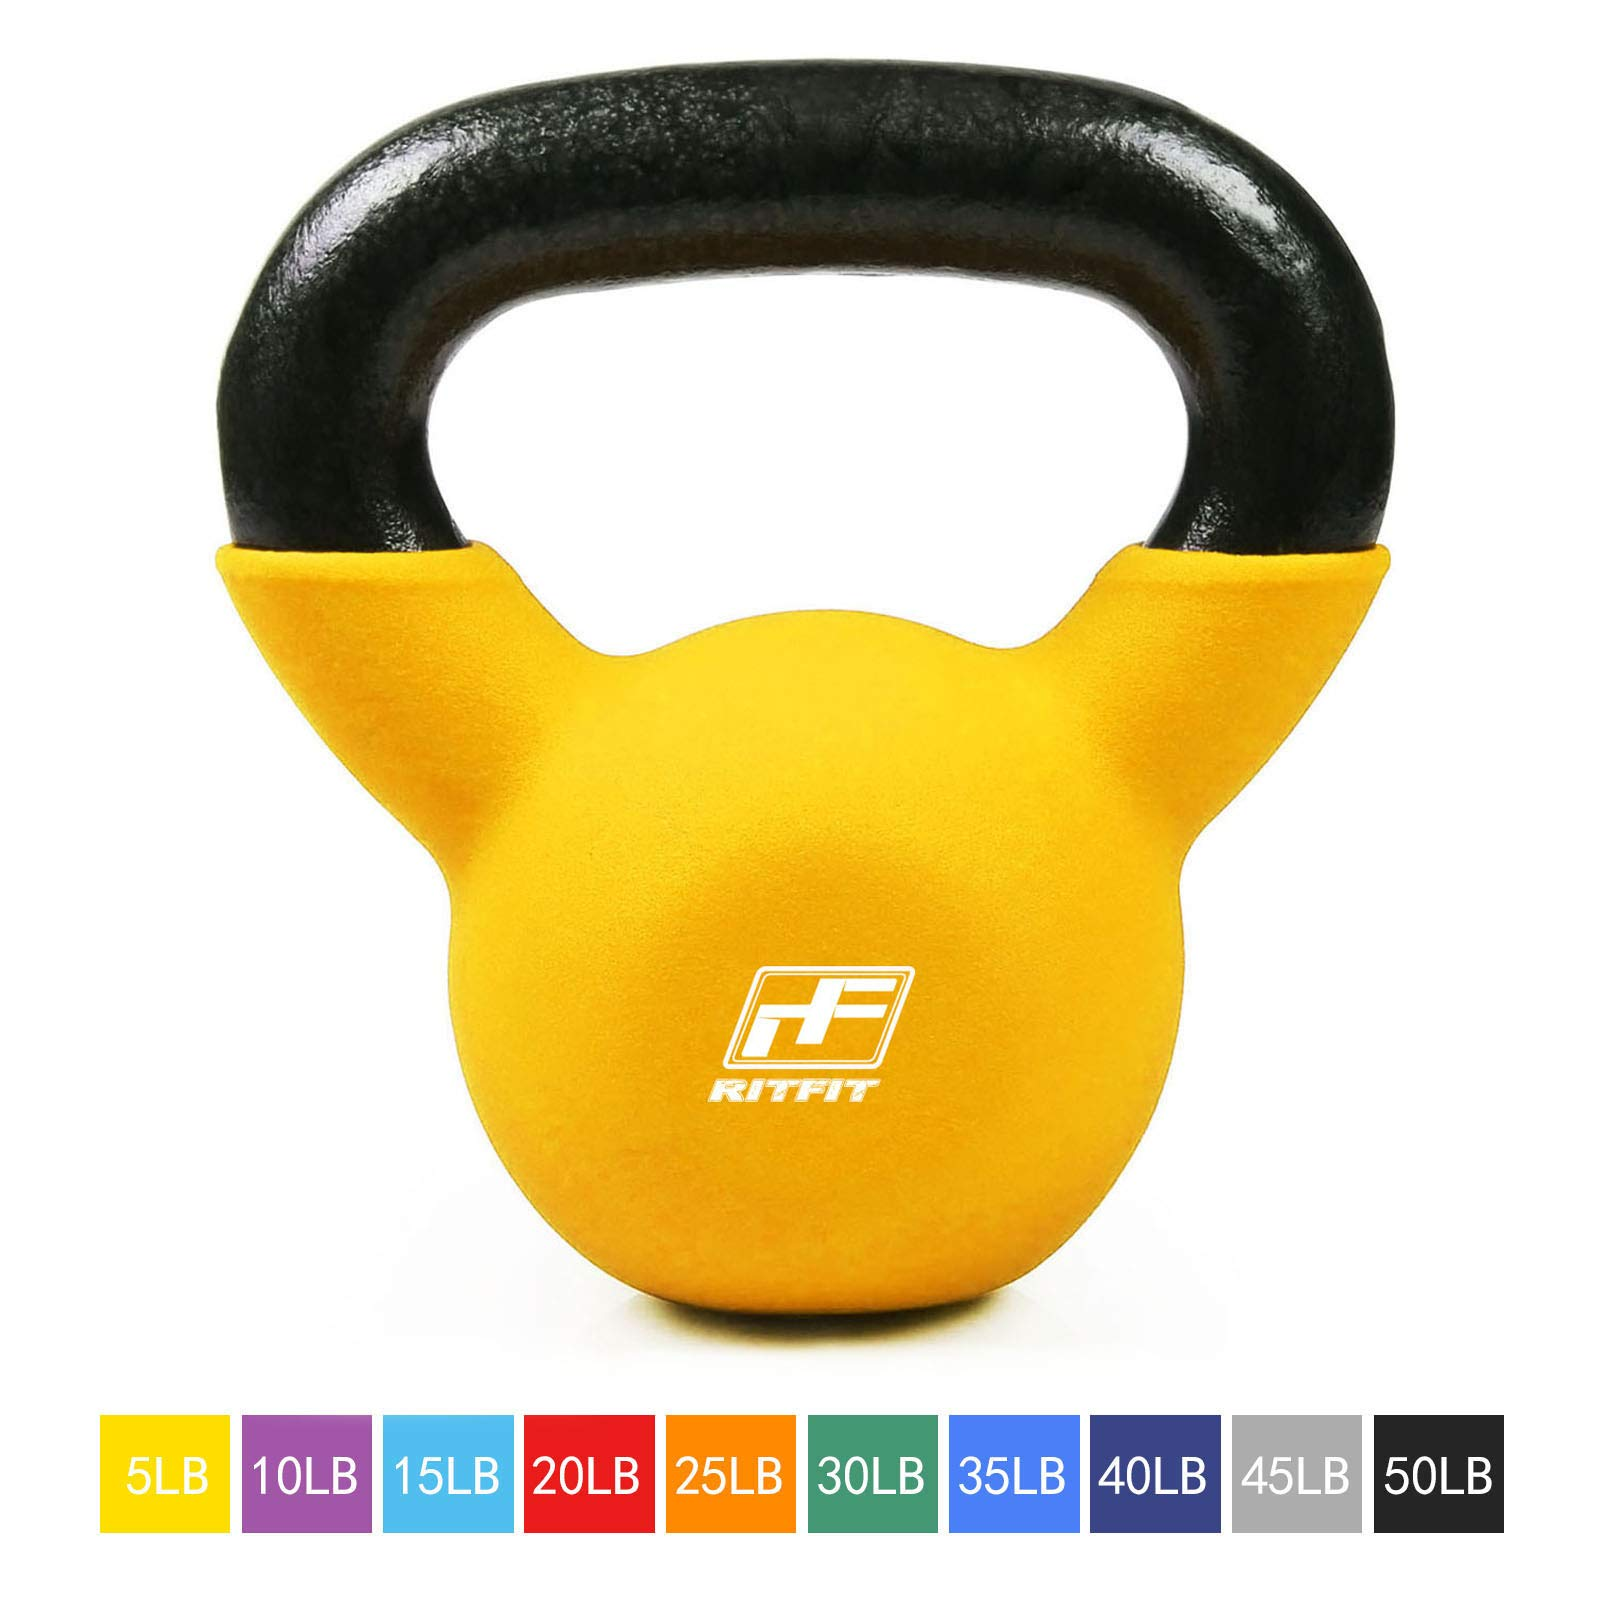 RitFit Neoprene Coated Solid Cast Iron Kettlebell - Great for Full Body Workout, Cross-Training, Weight Loss & Strength Training (5/10/15/20/25/30/35/40/45/50 LB) (5LB(Yellow))